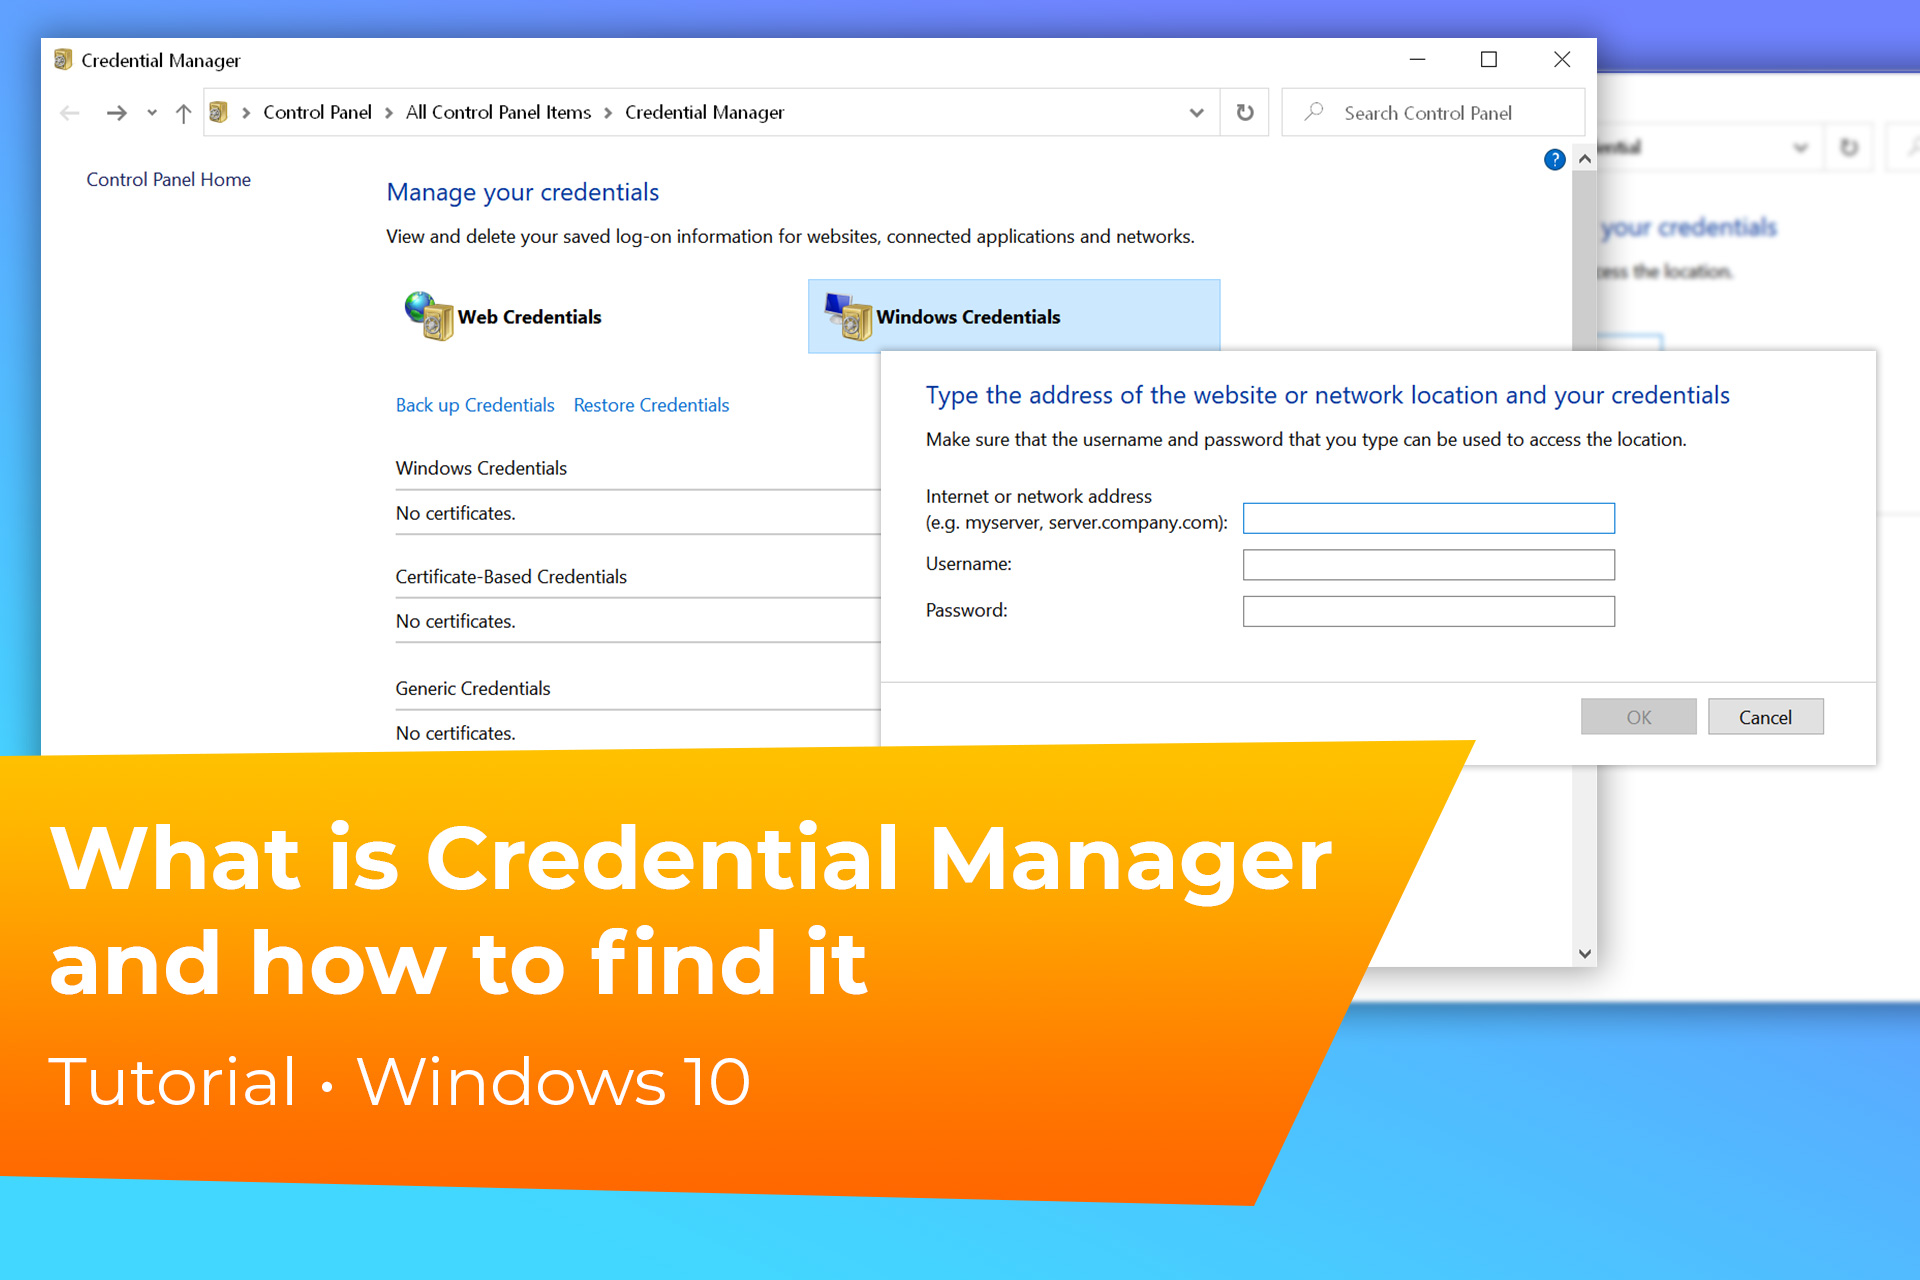 What is Credential Manager and how to find it in Windows 10